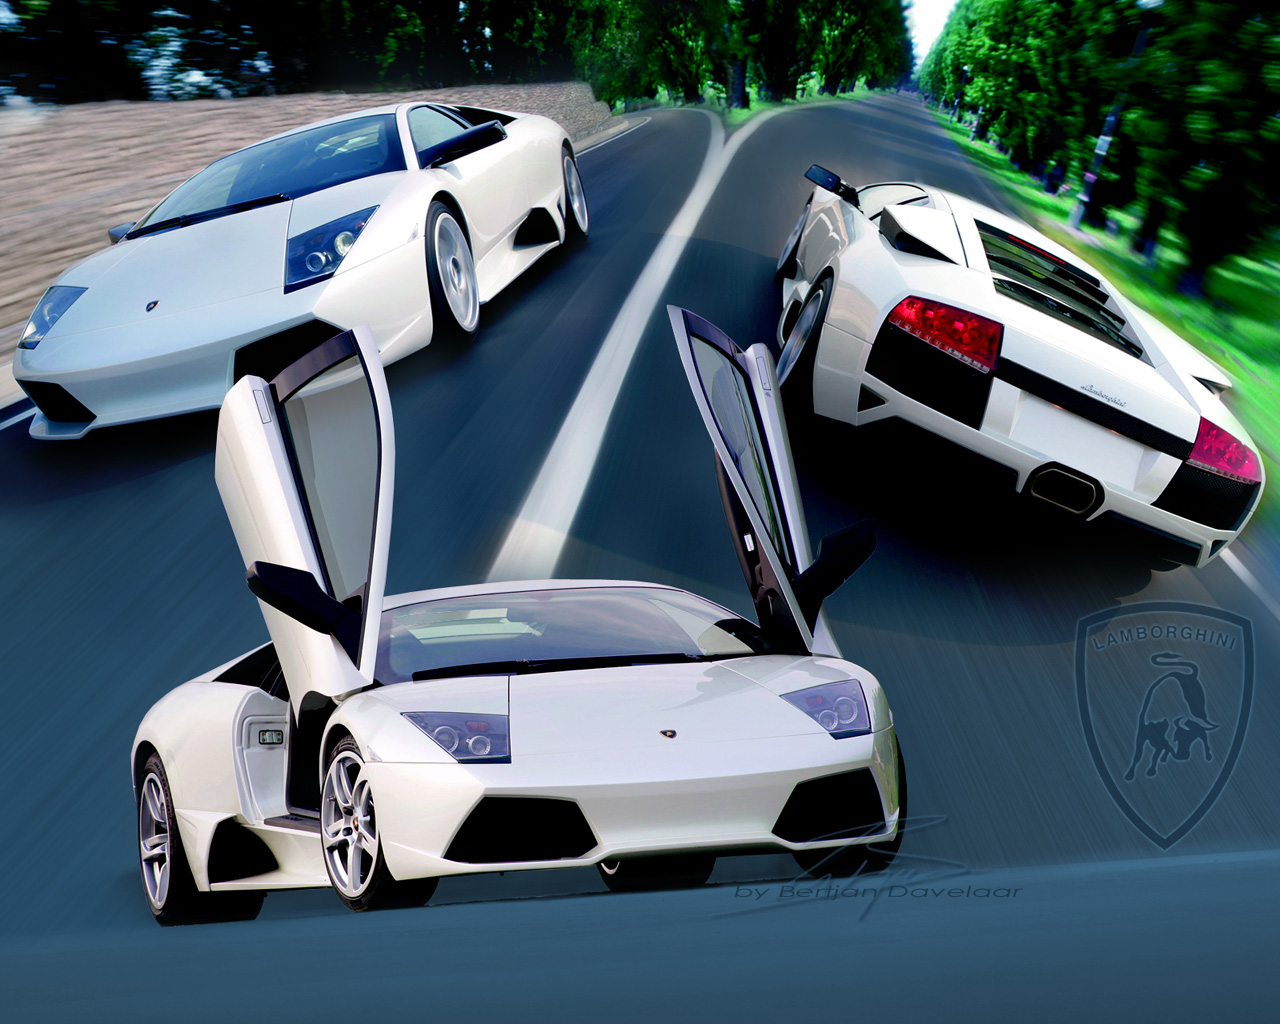 lamborghini murcielago wallpaper sport cars - Lamborghini Gallardo Wallpaper Blue